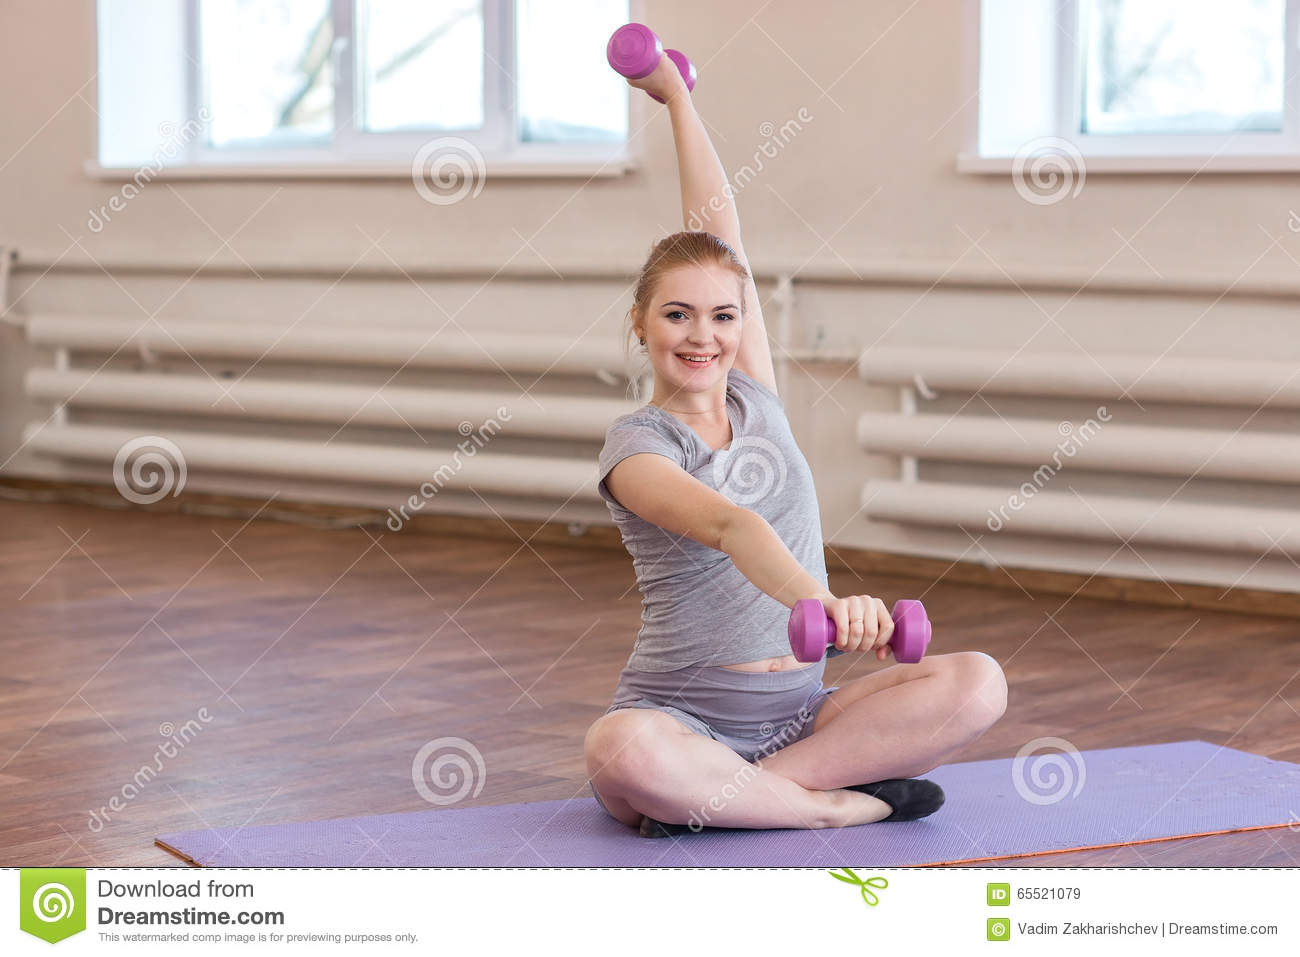 Young Pregnant Woman Doing Gymnastic Exercises Stock Image ...